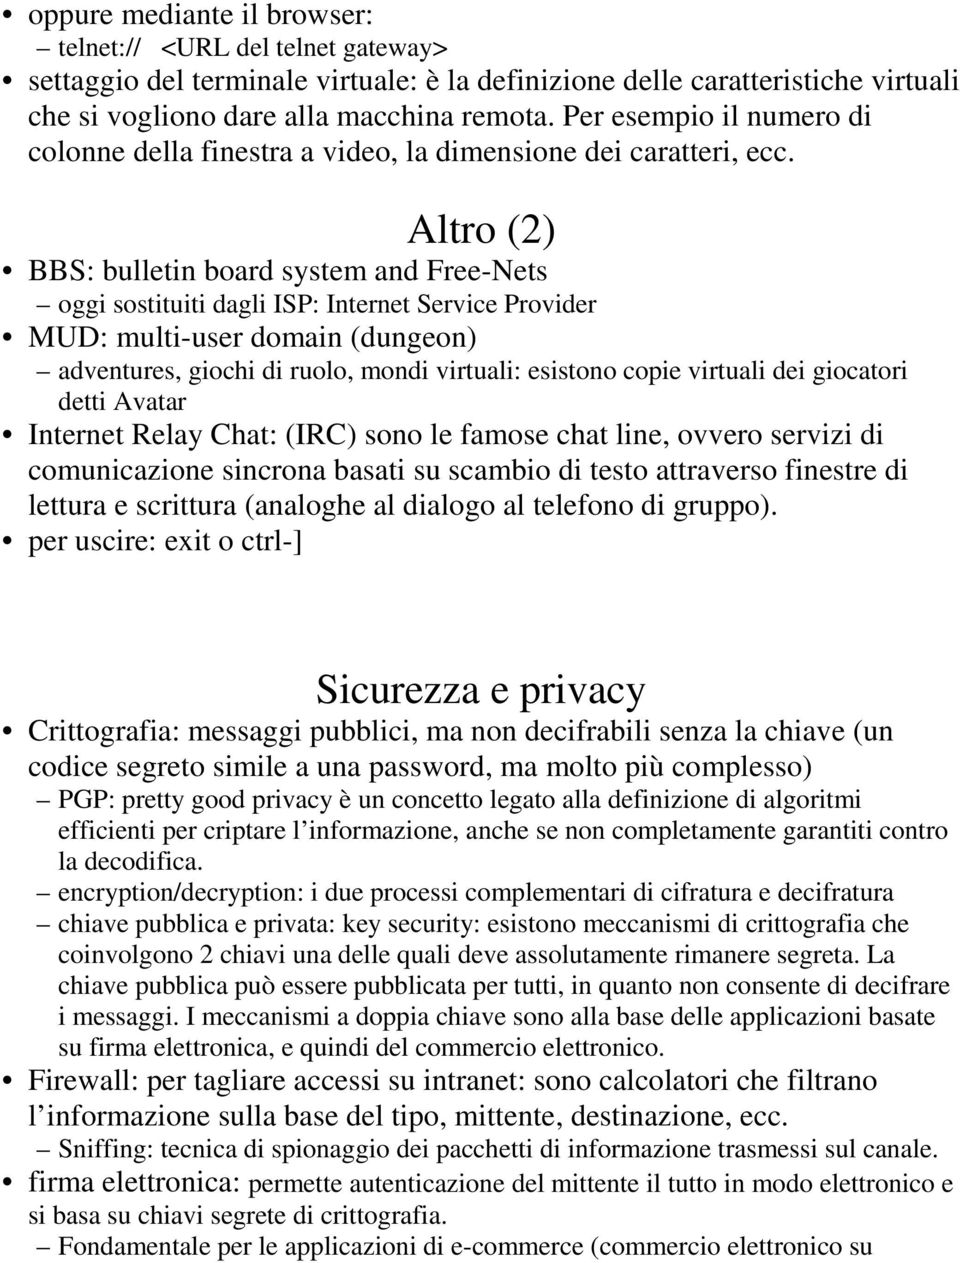 Altro (2) BBS: bulletin board system and Free-Nets oggi sostituiti dagli ISP: Internet Service Provider MUD: multi-user domain (dungeon) adventures, giochi di ruolo, mondi virtuali: esistono copie